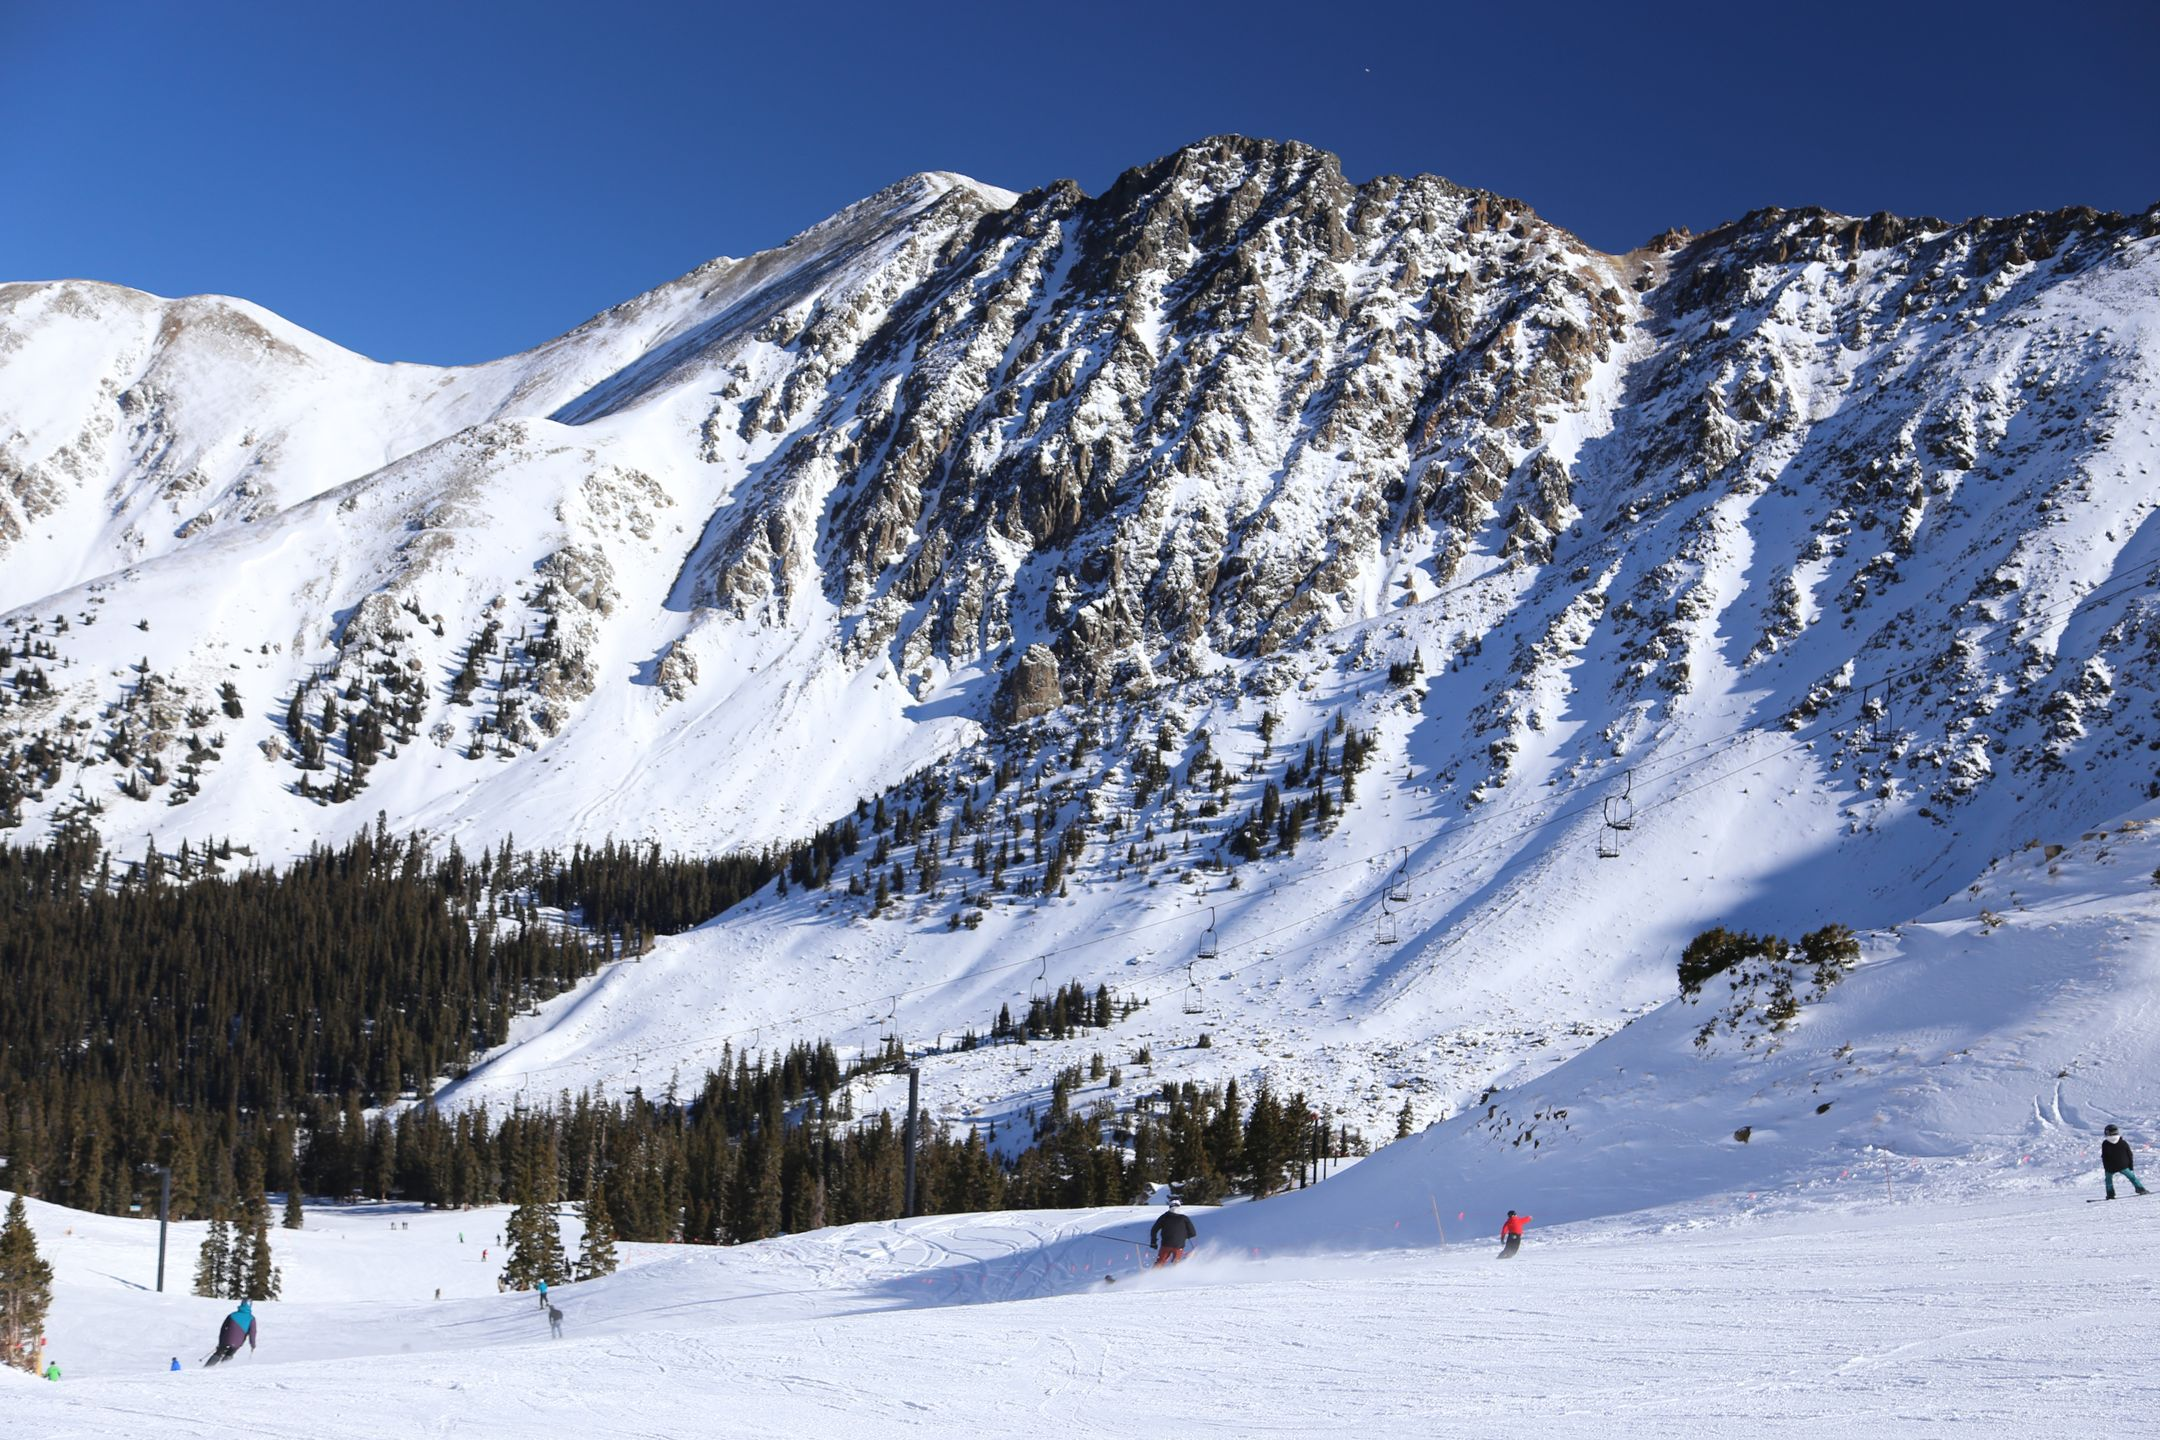 Skiing United States ski resort Arapahoe Basin ripatrip travel big